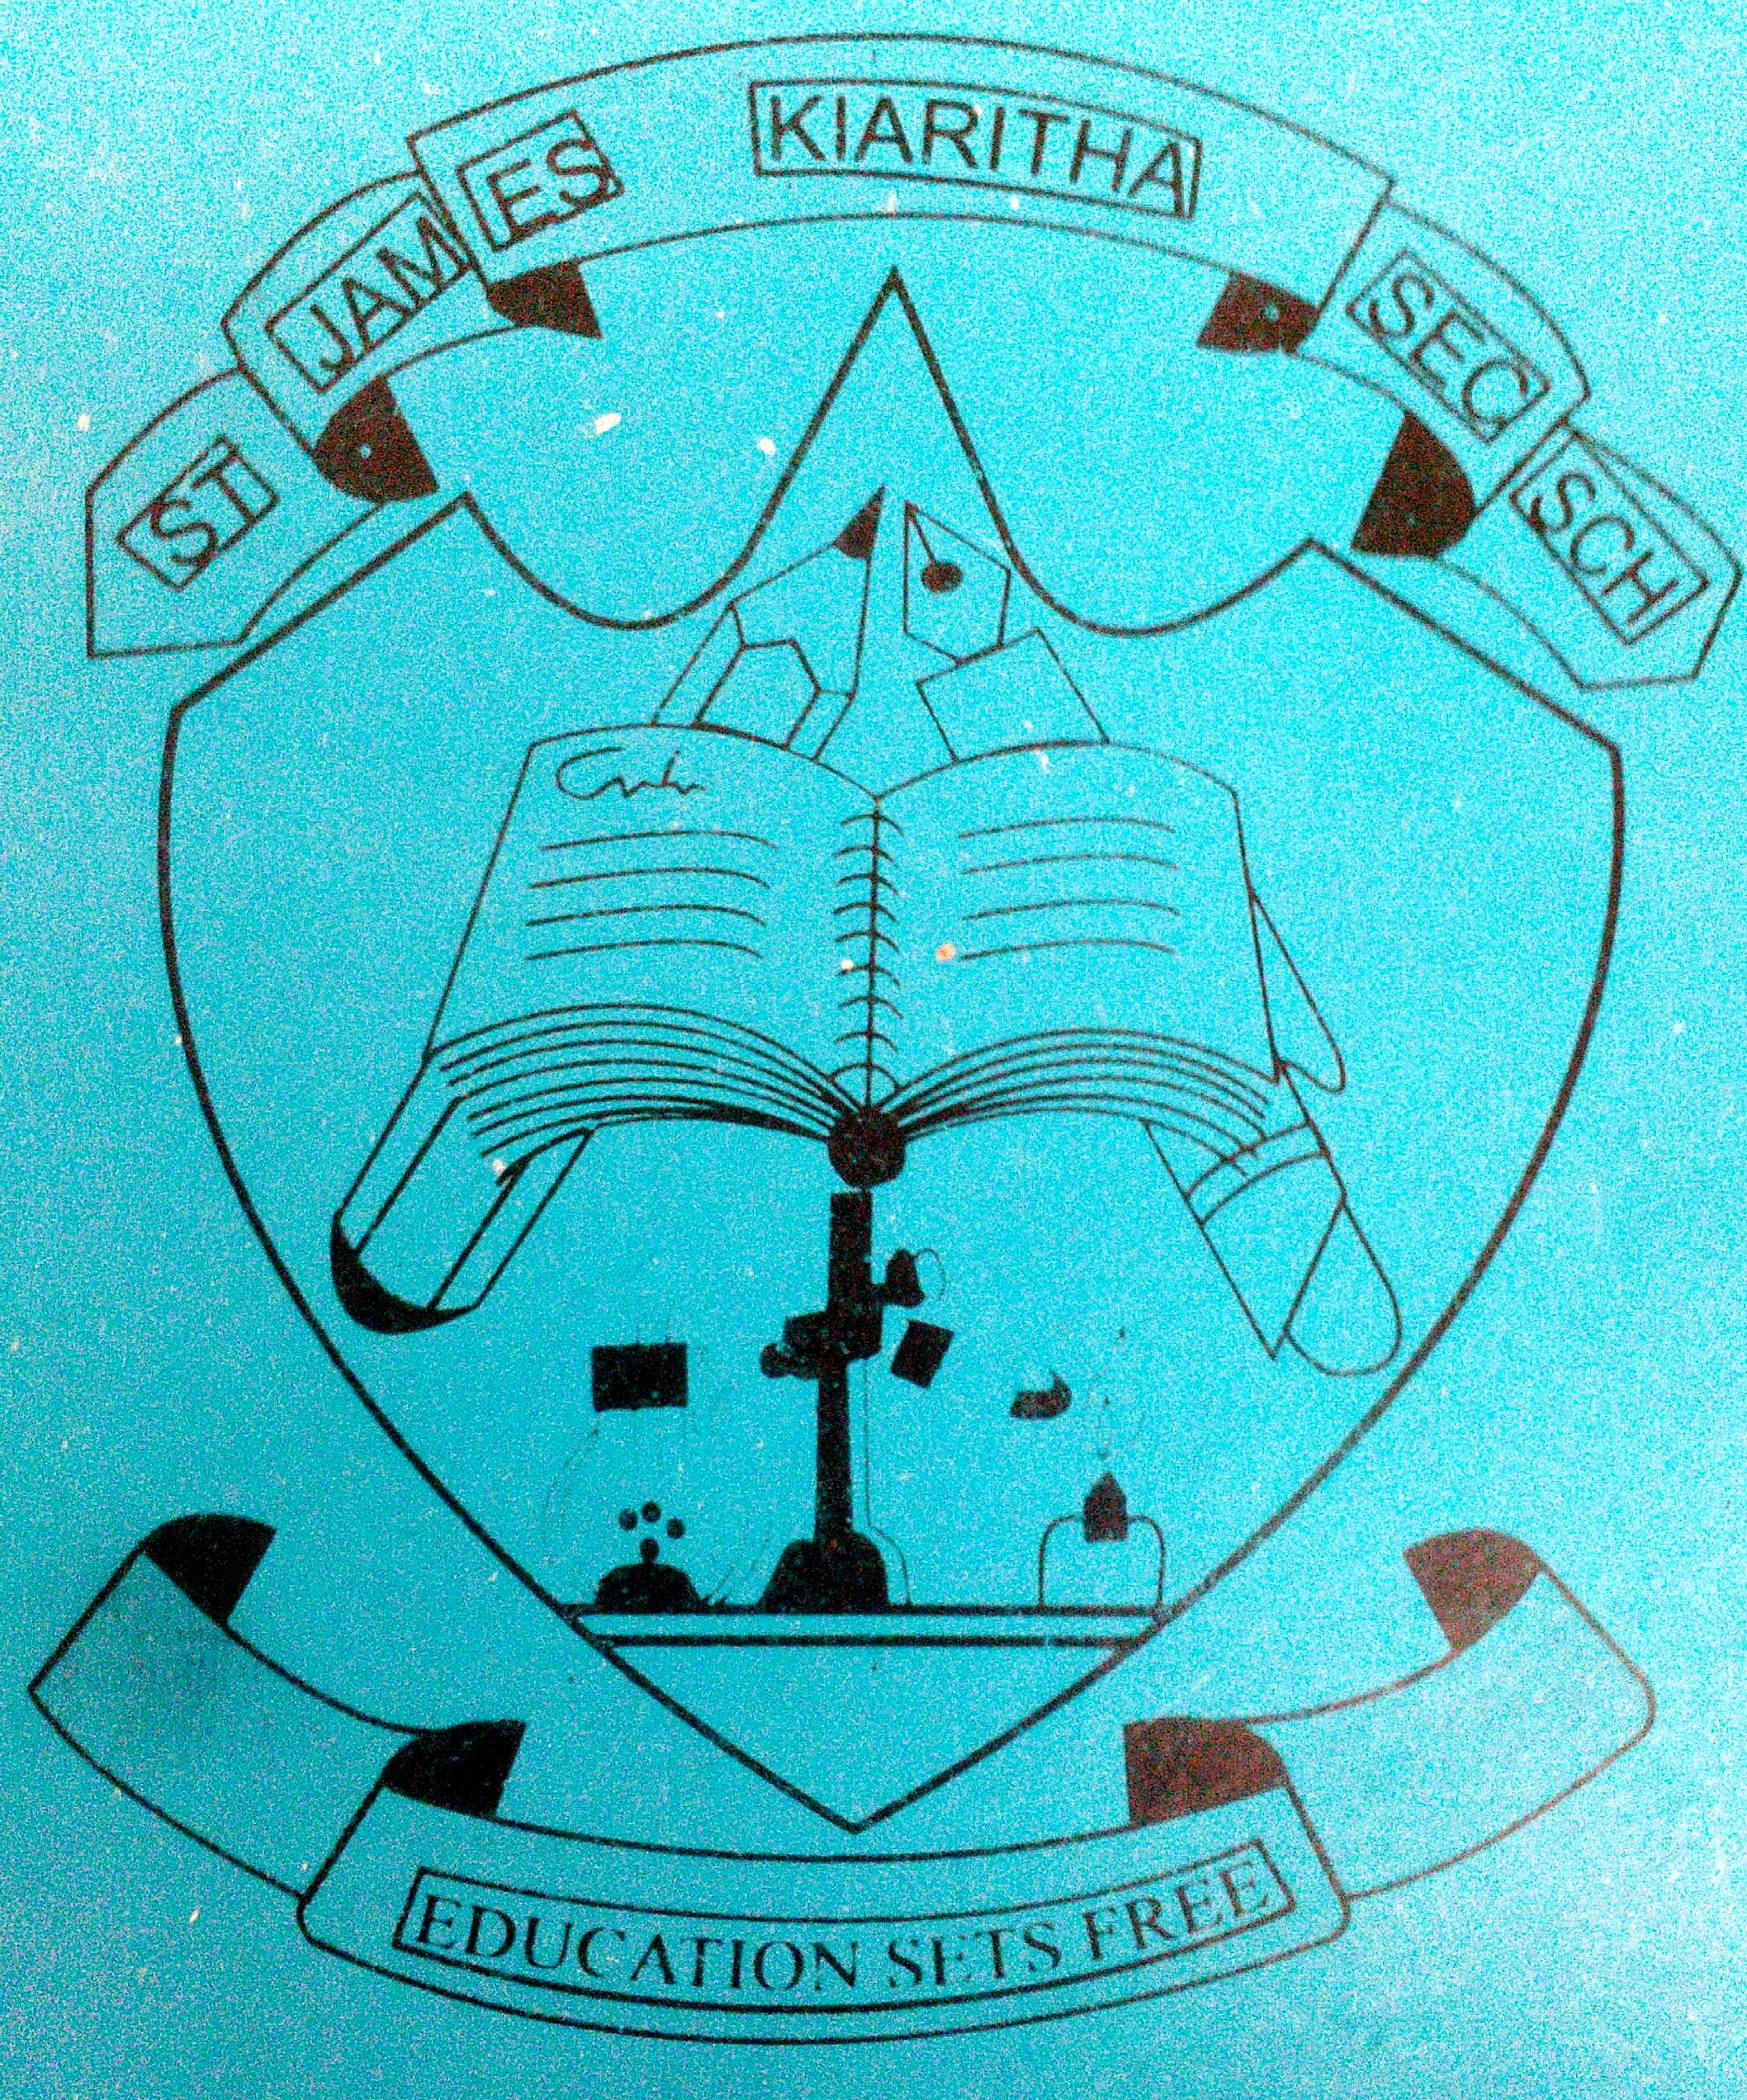 St James Kiaritha Secondary School logo